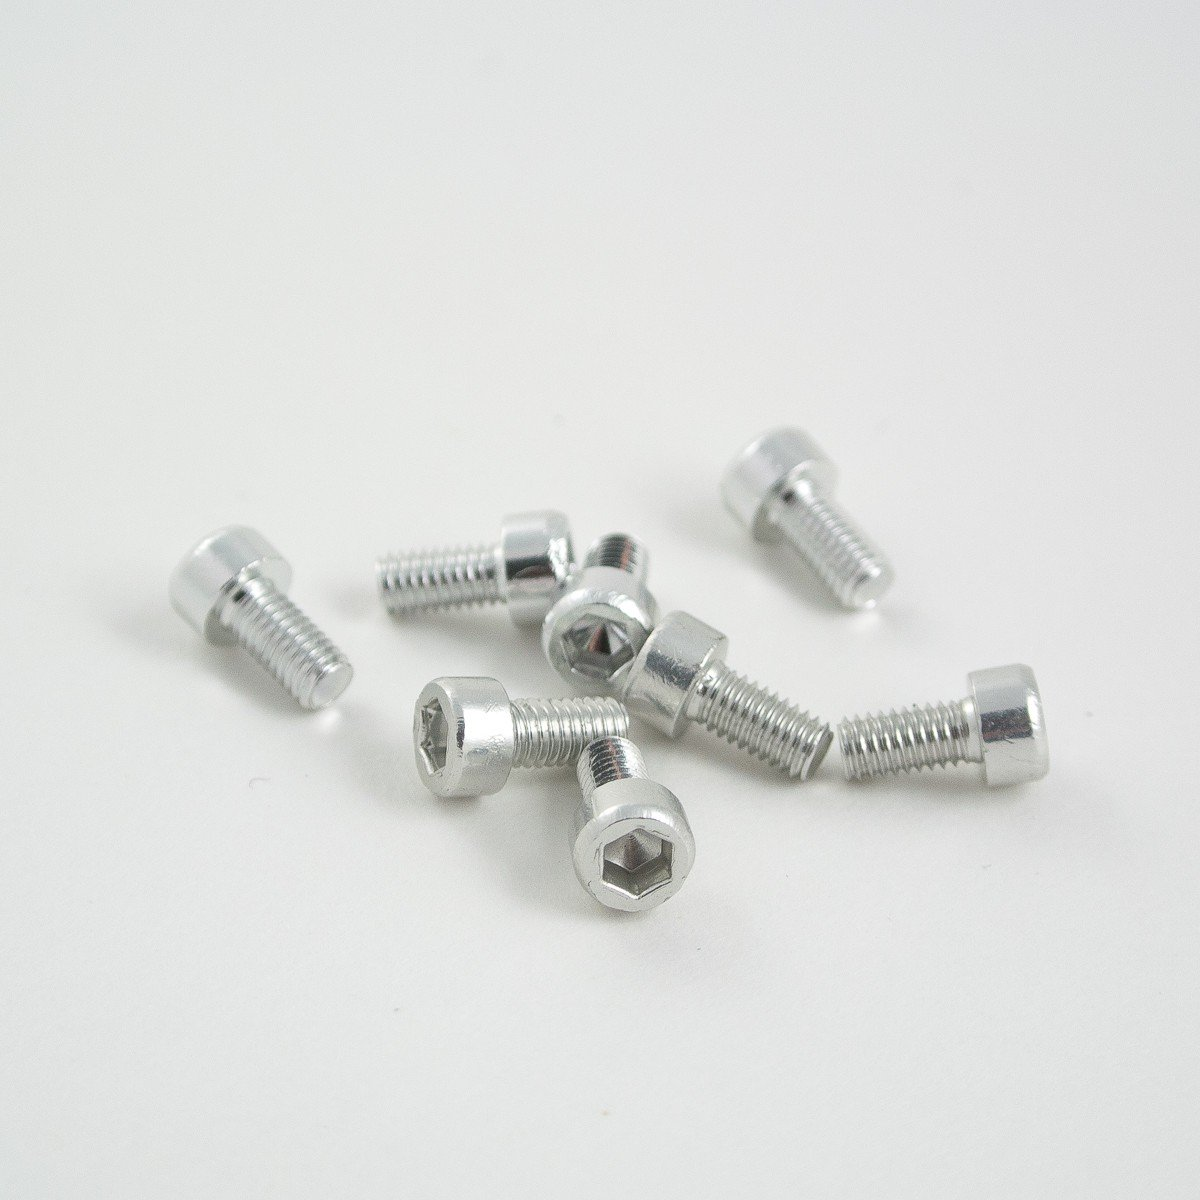 6mm M3 aluminium socket head bolt 8pcs